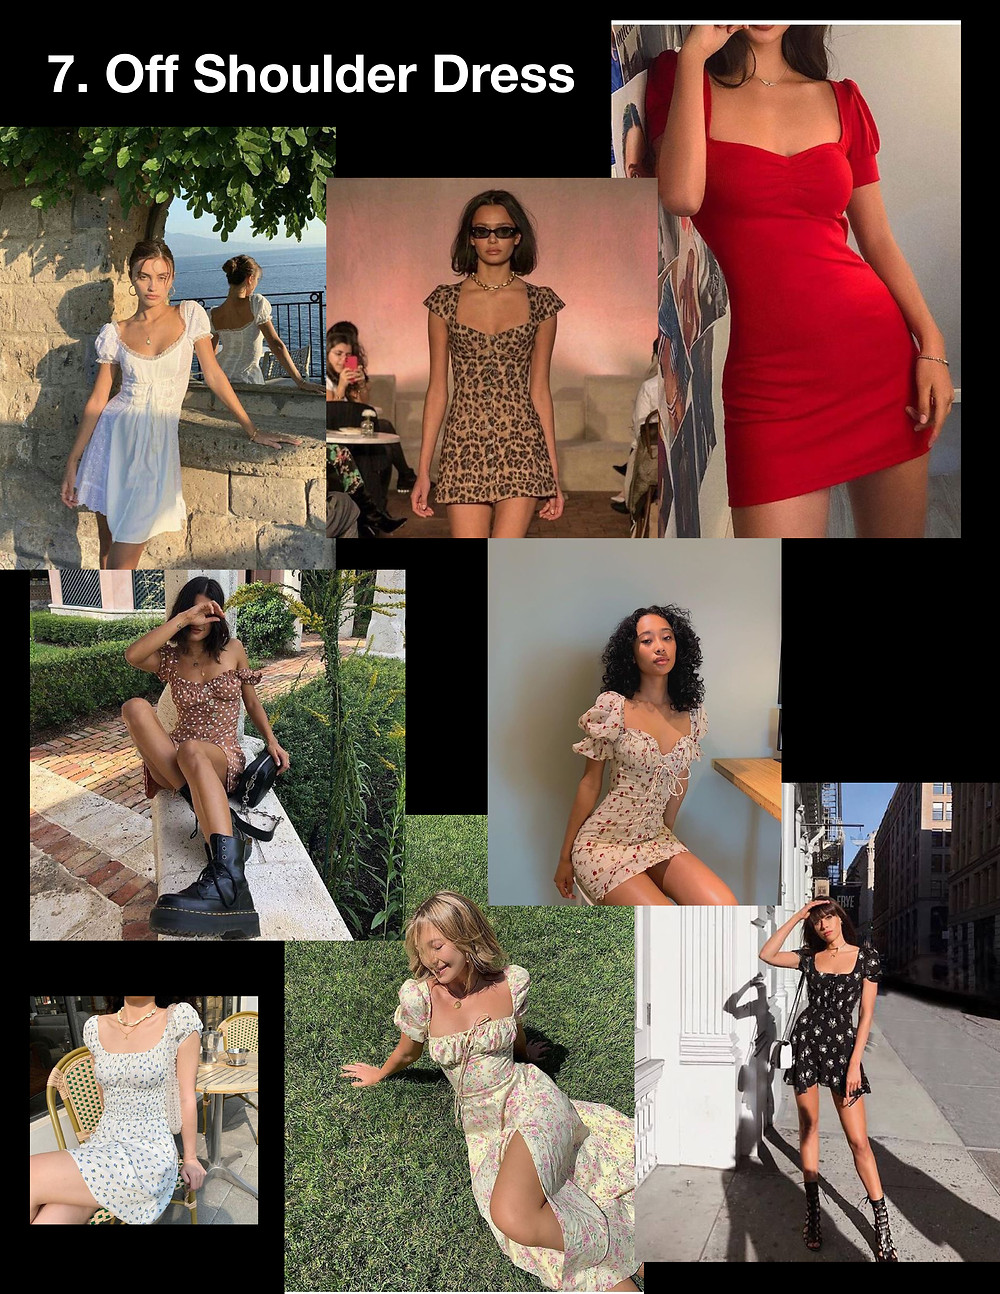 summer dresses 2021, style tips, fashion, shopping, trends, off shoulder dress, 90s, grunge style